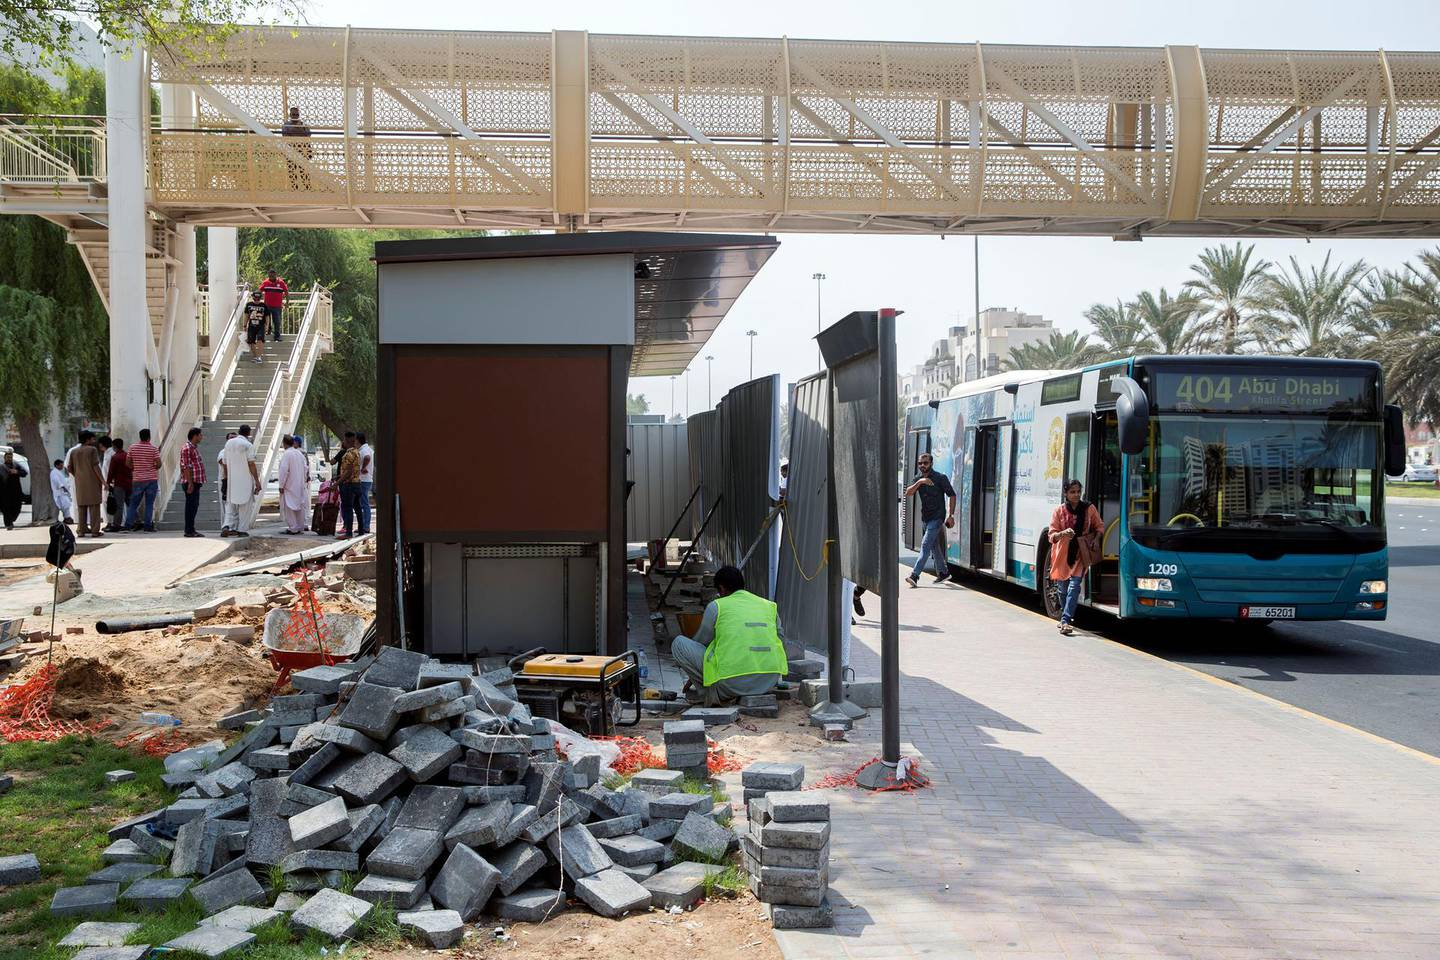 Abu Dhabi, United Arab Emirates - August 14, 2018: A new bus shelter being built in Abu Dhabi. A story on the reaction from users of the bus service to the new shelters. Tuesday, August 14th, 2018 on Sultan bin Zayed the 1st Street, Abu Dhabi. Chris Whiteoak / The National